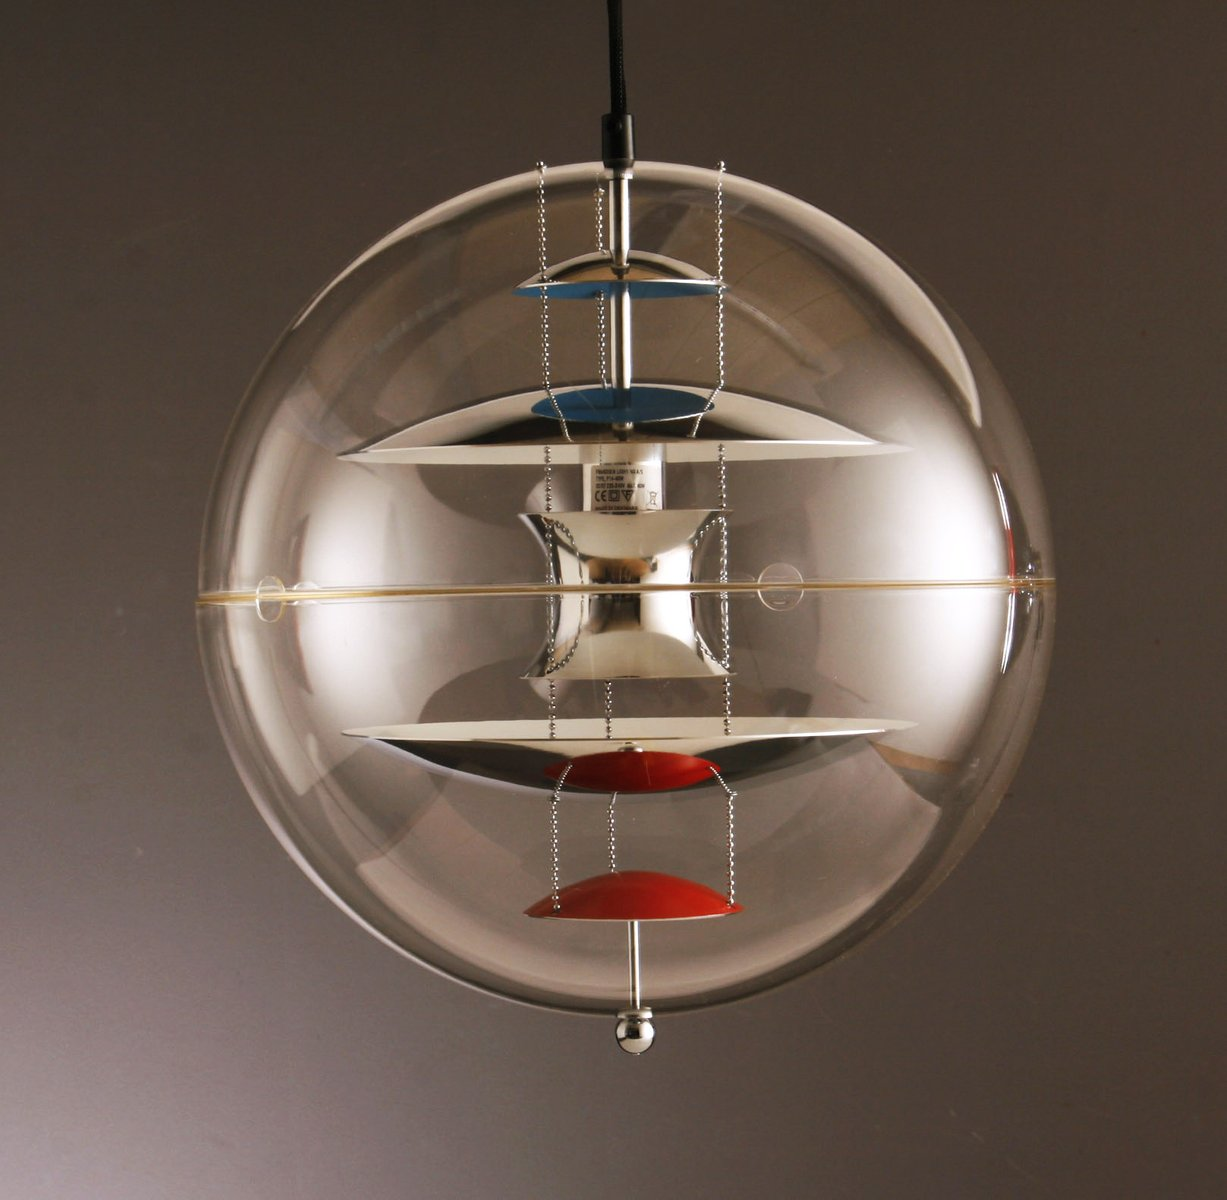 Awesome Large Globe Pendant By Verner Panton For Louis Poulsen, 1969 For . Pictures Gallery